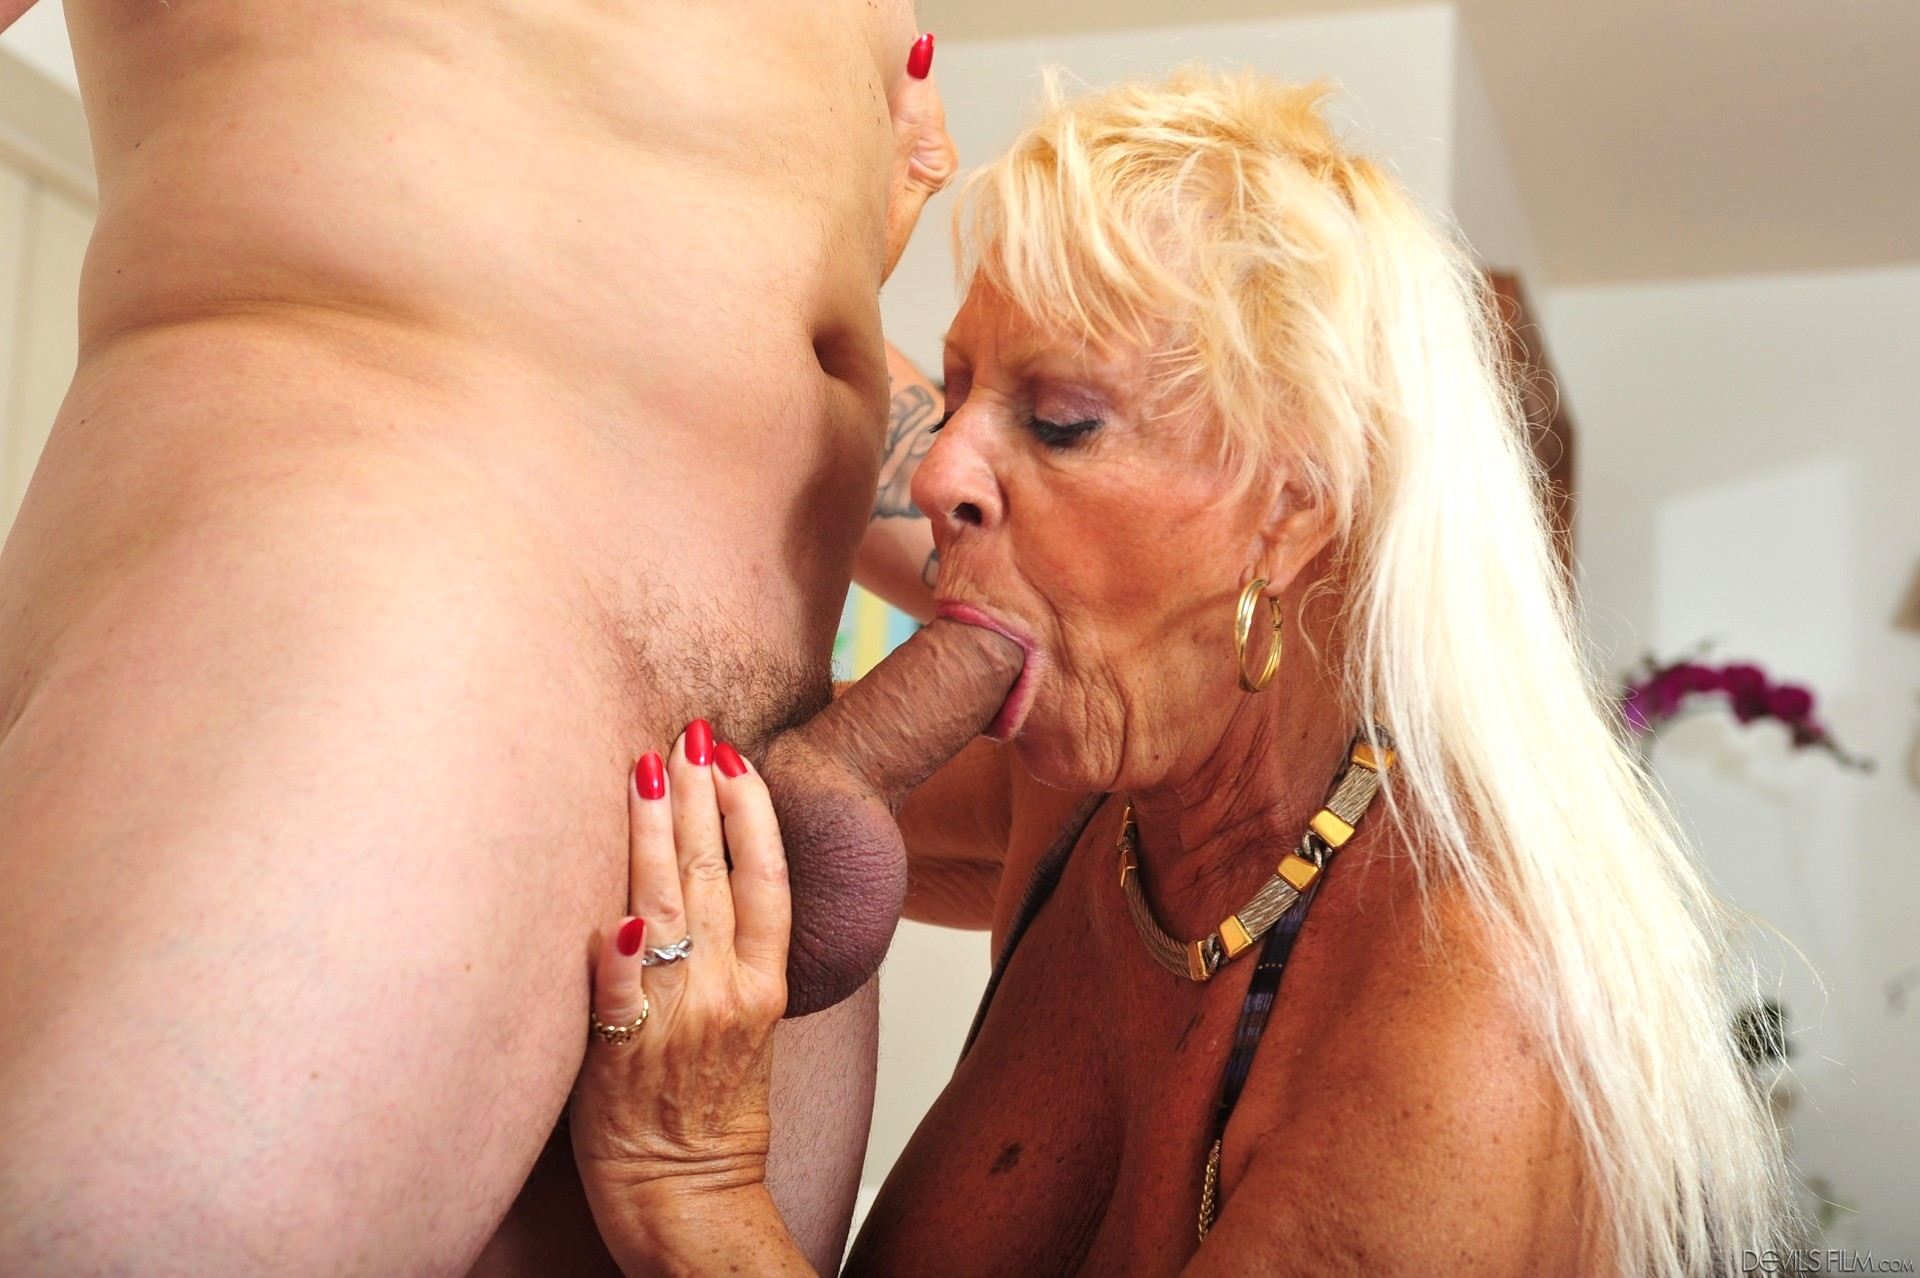 Mature galery fuck, hot mom porn, sexy older woman fuck